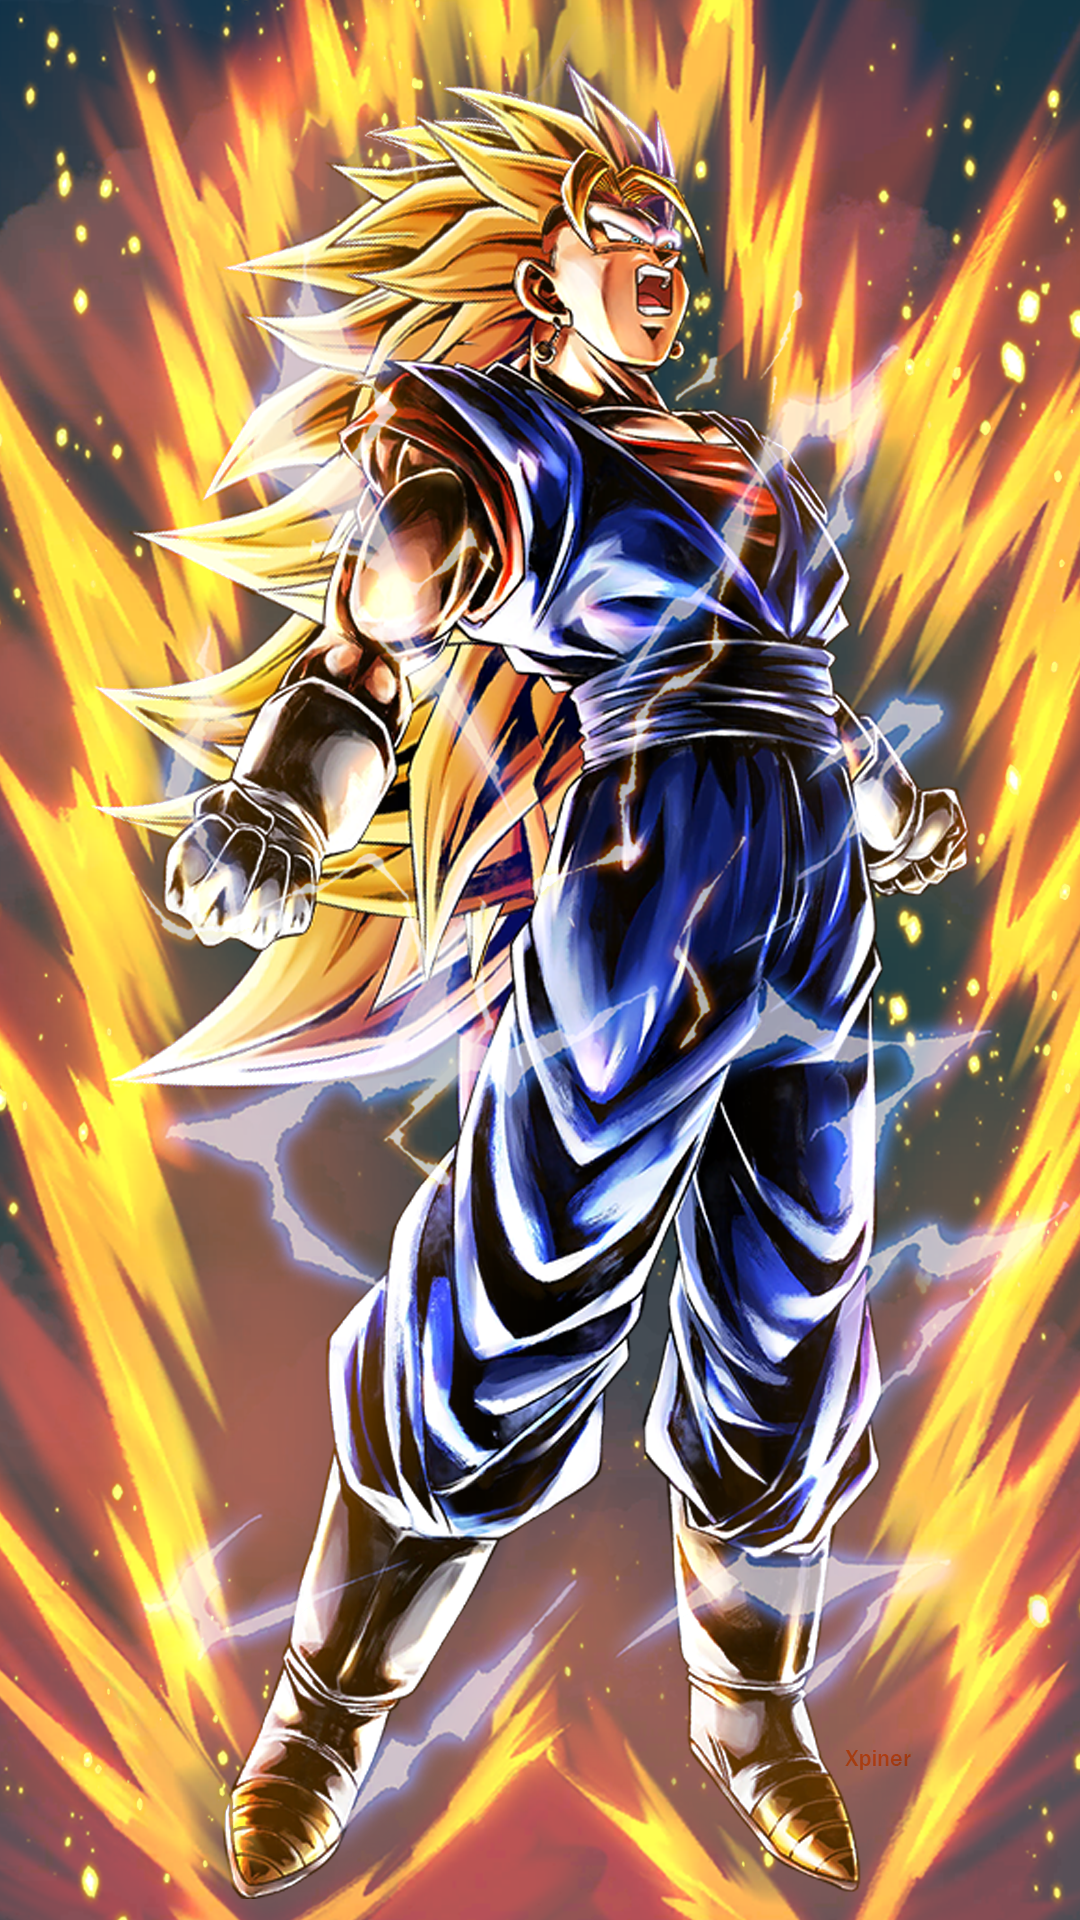 Dragon Ball Z Wallpapers 4k For Mobile In 2021 Dragon Ball Super Wallpapers Dragon Ball Z Dragon Ball Wallpapers